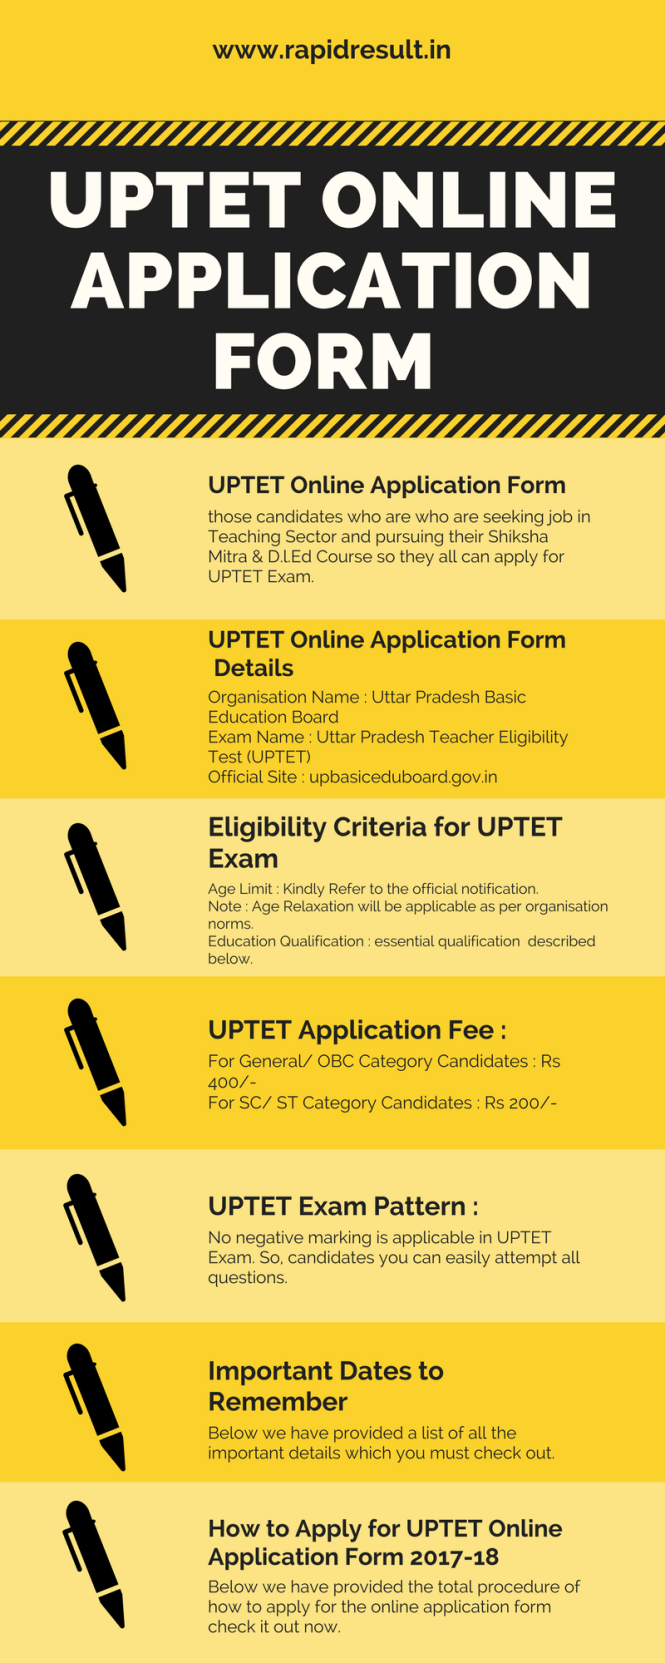 UPTET application form online